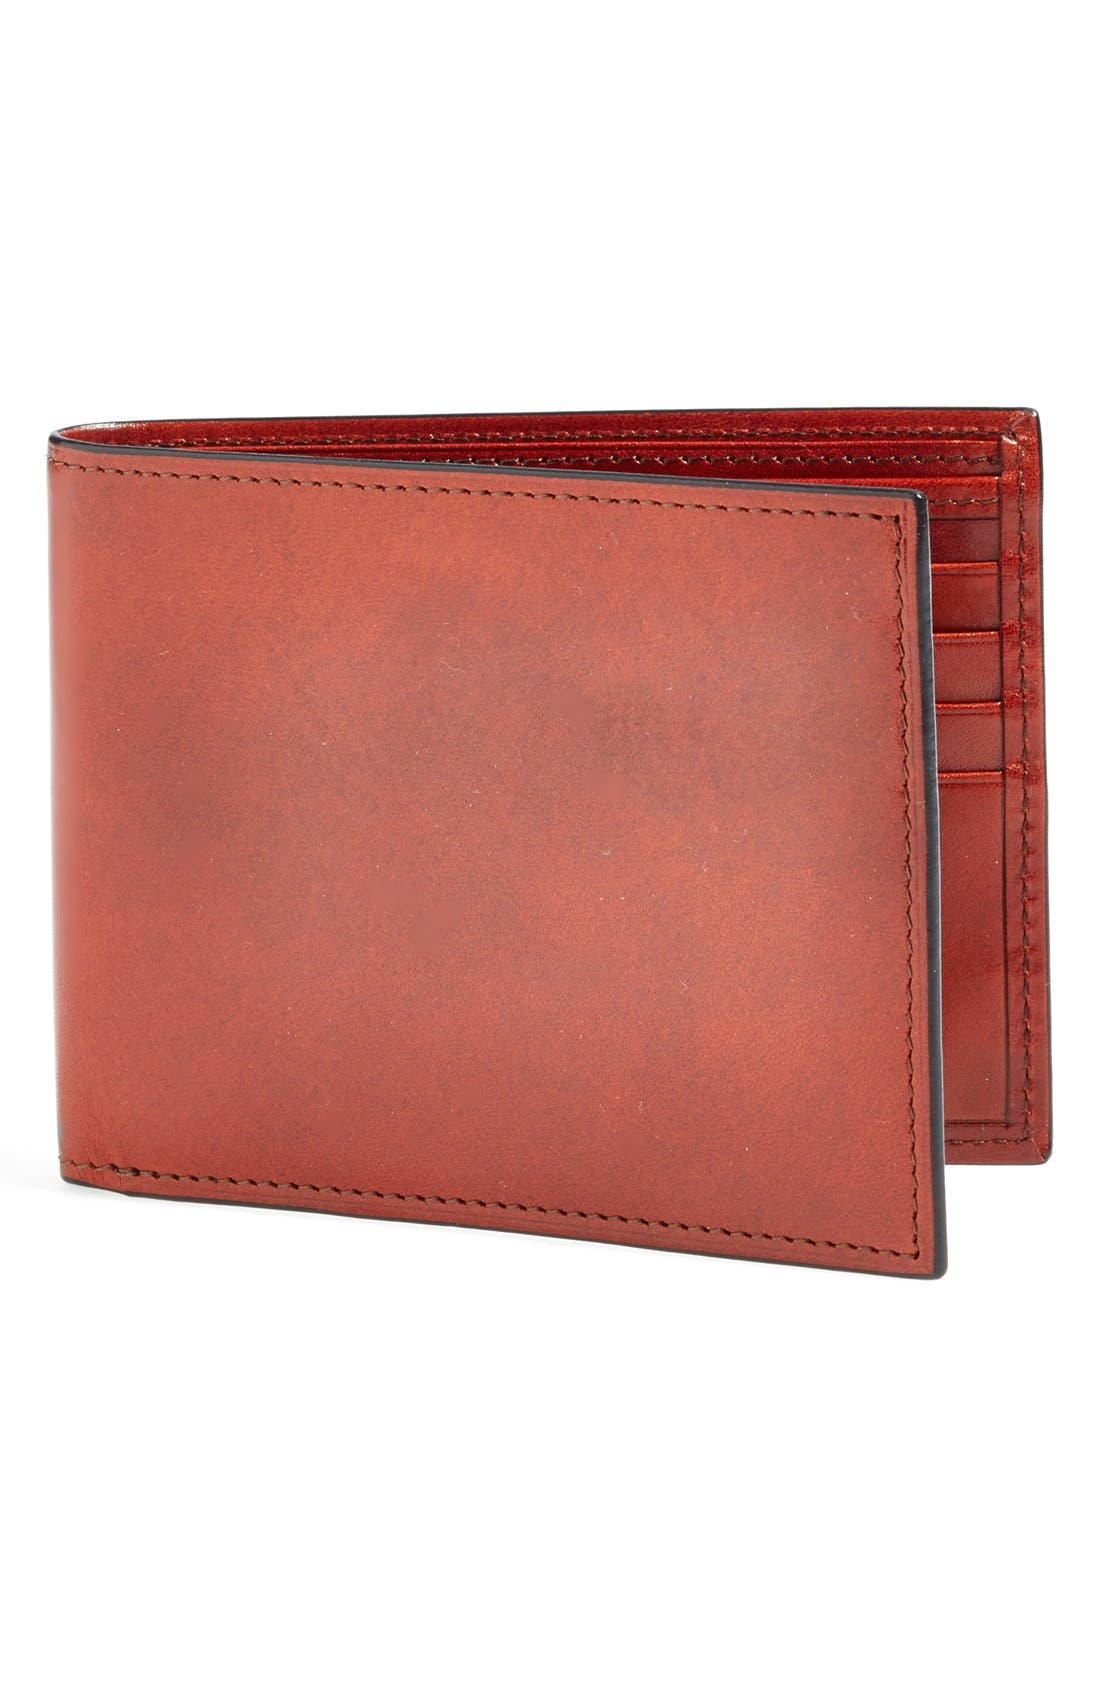 Old Leather Deluxe Wallet